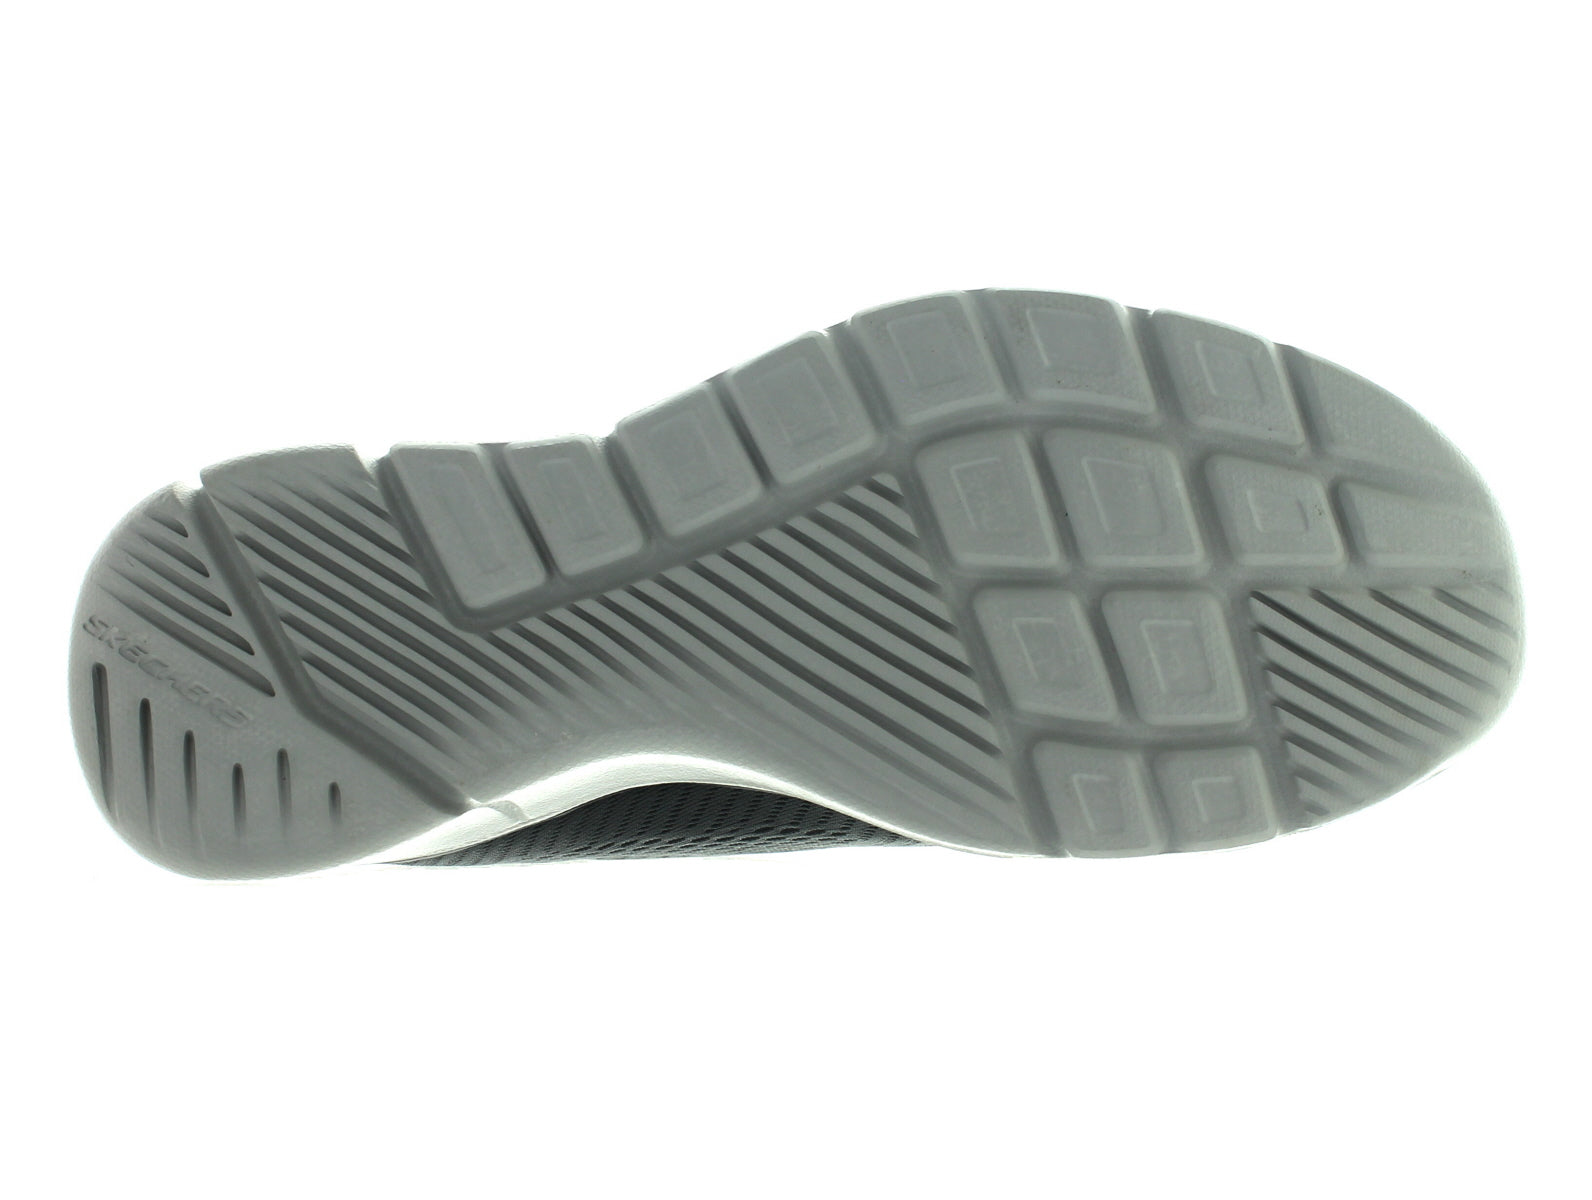 Derecho lona Artista  Skechers 52927 |Charcoal |Mens laced shoes at Skechers Shoes Ireland